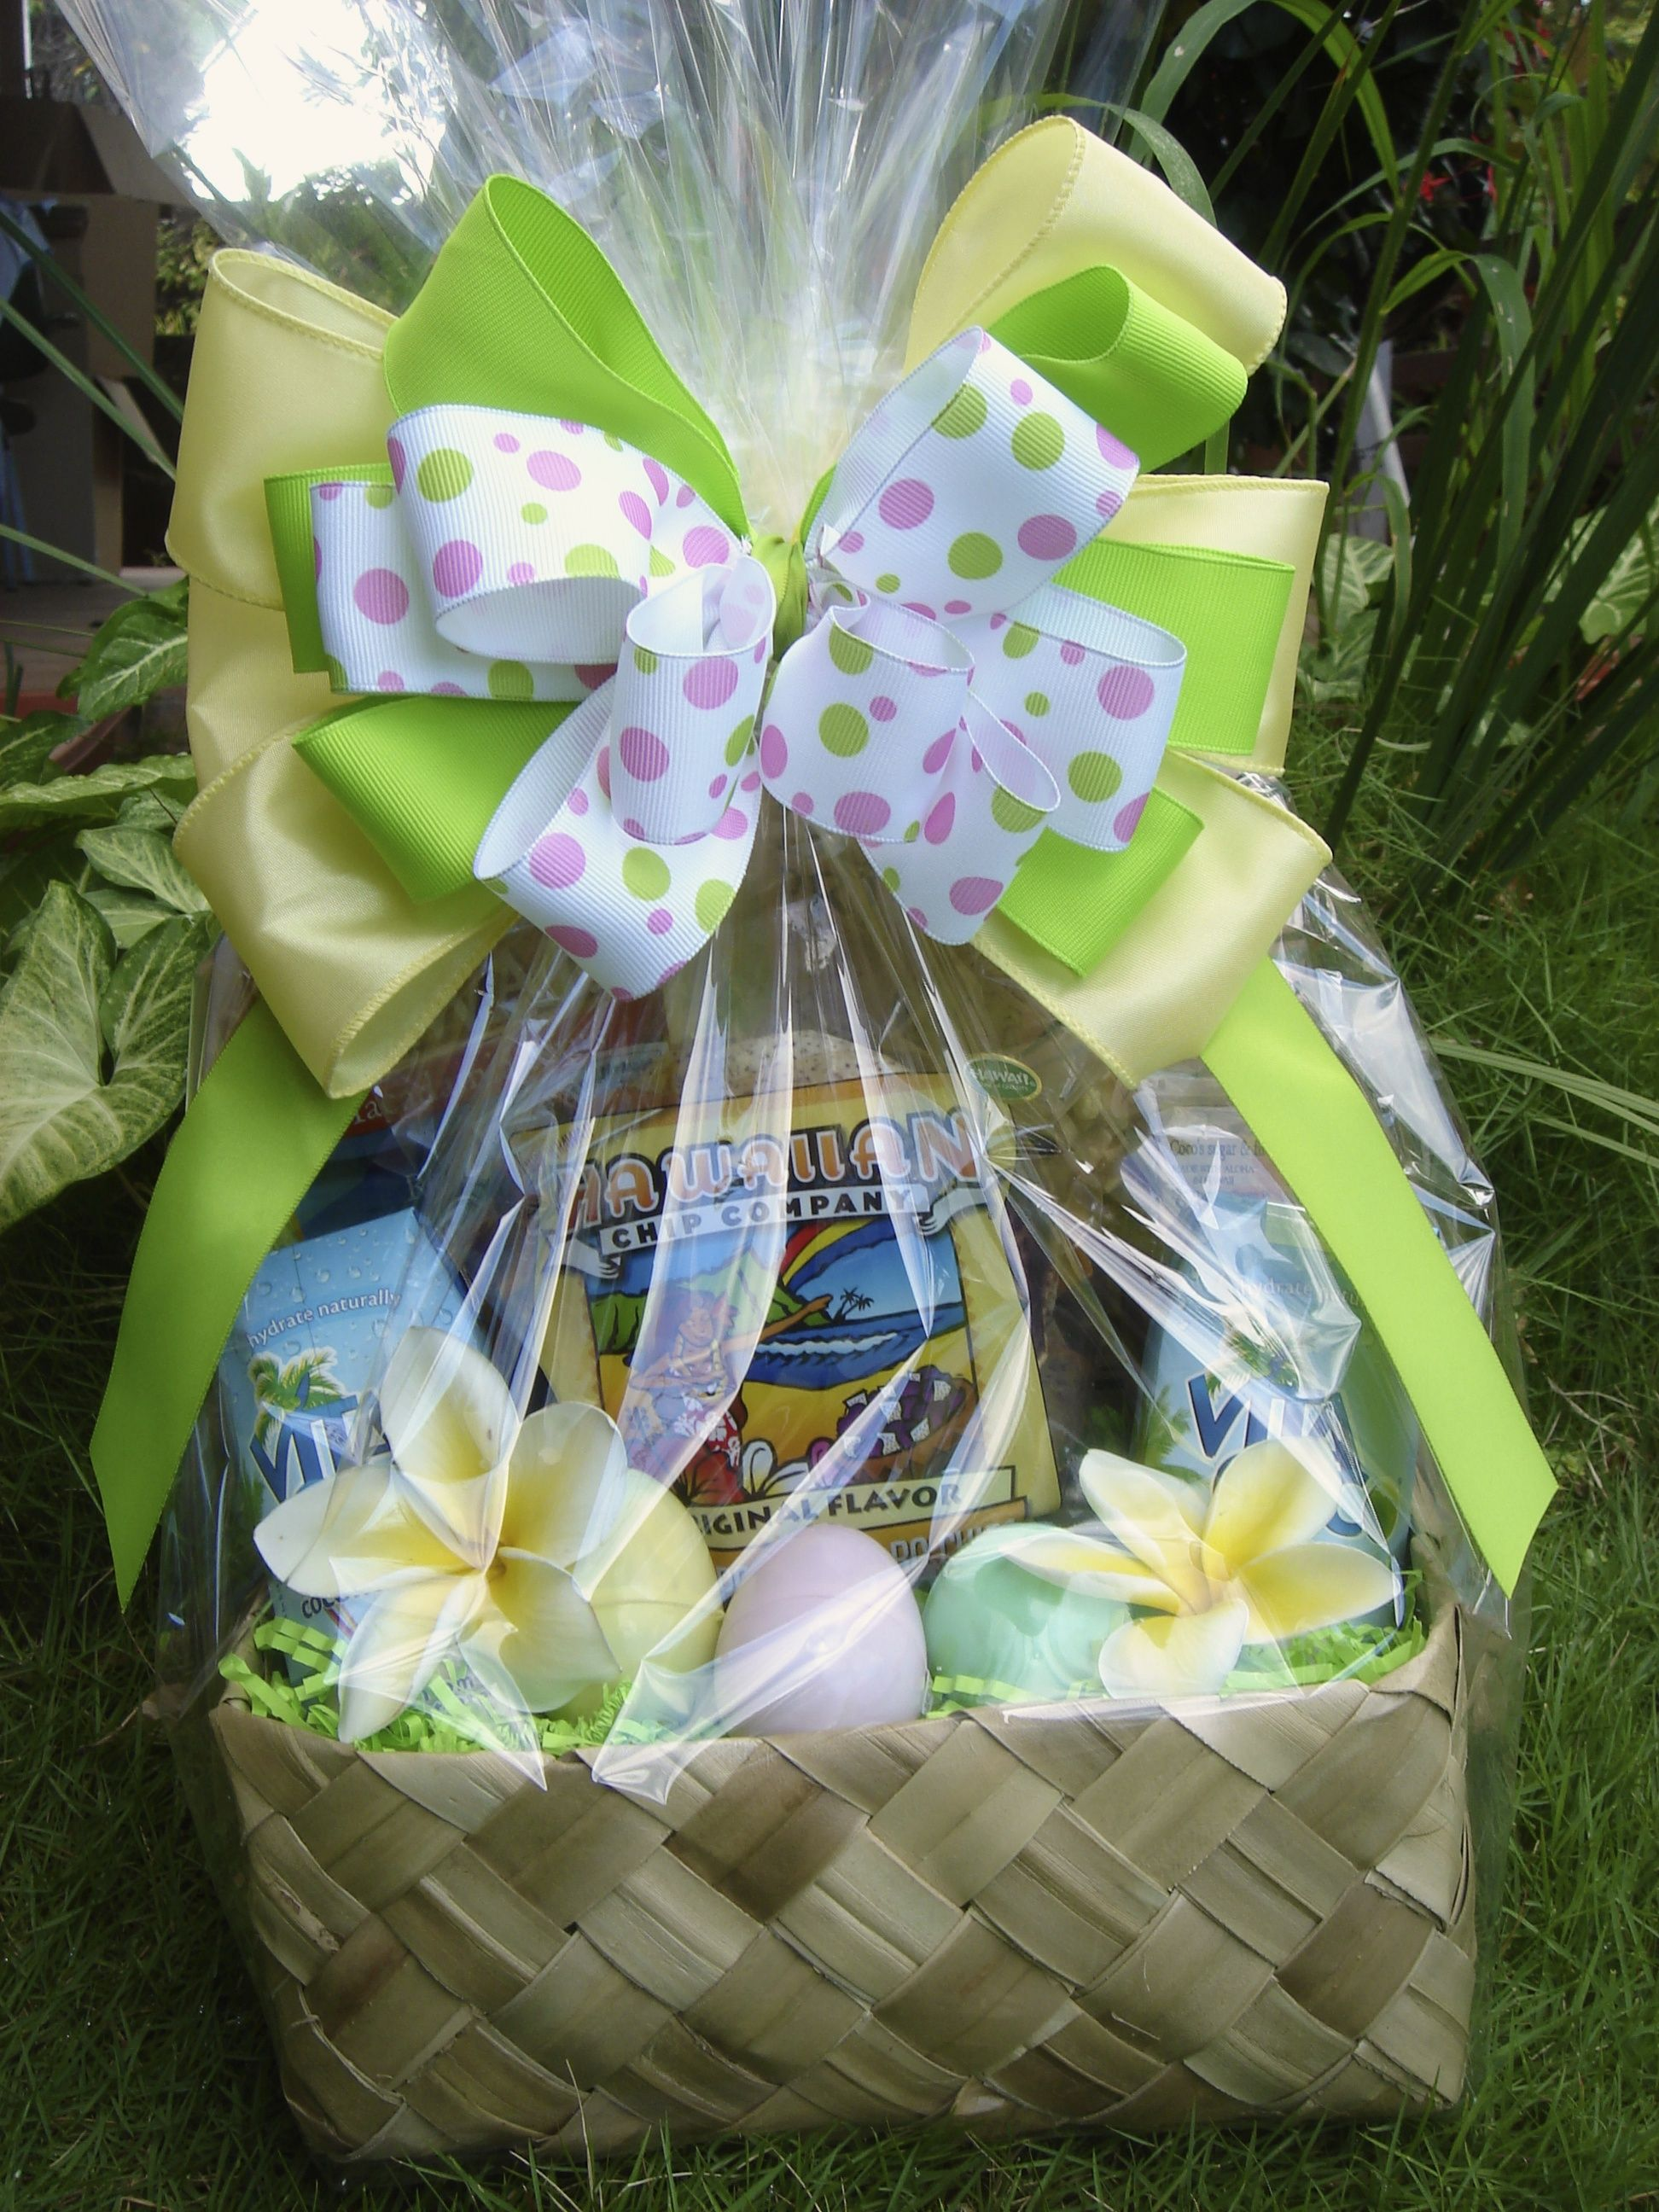 Enjoy paradise tropical easter theme happy easter from we offer gourmet hawaiian gift baskets with gifts from hawaii for special occasions conventions and cruise ships negle Gallery